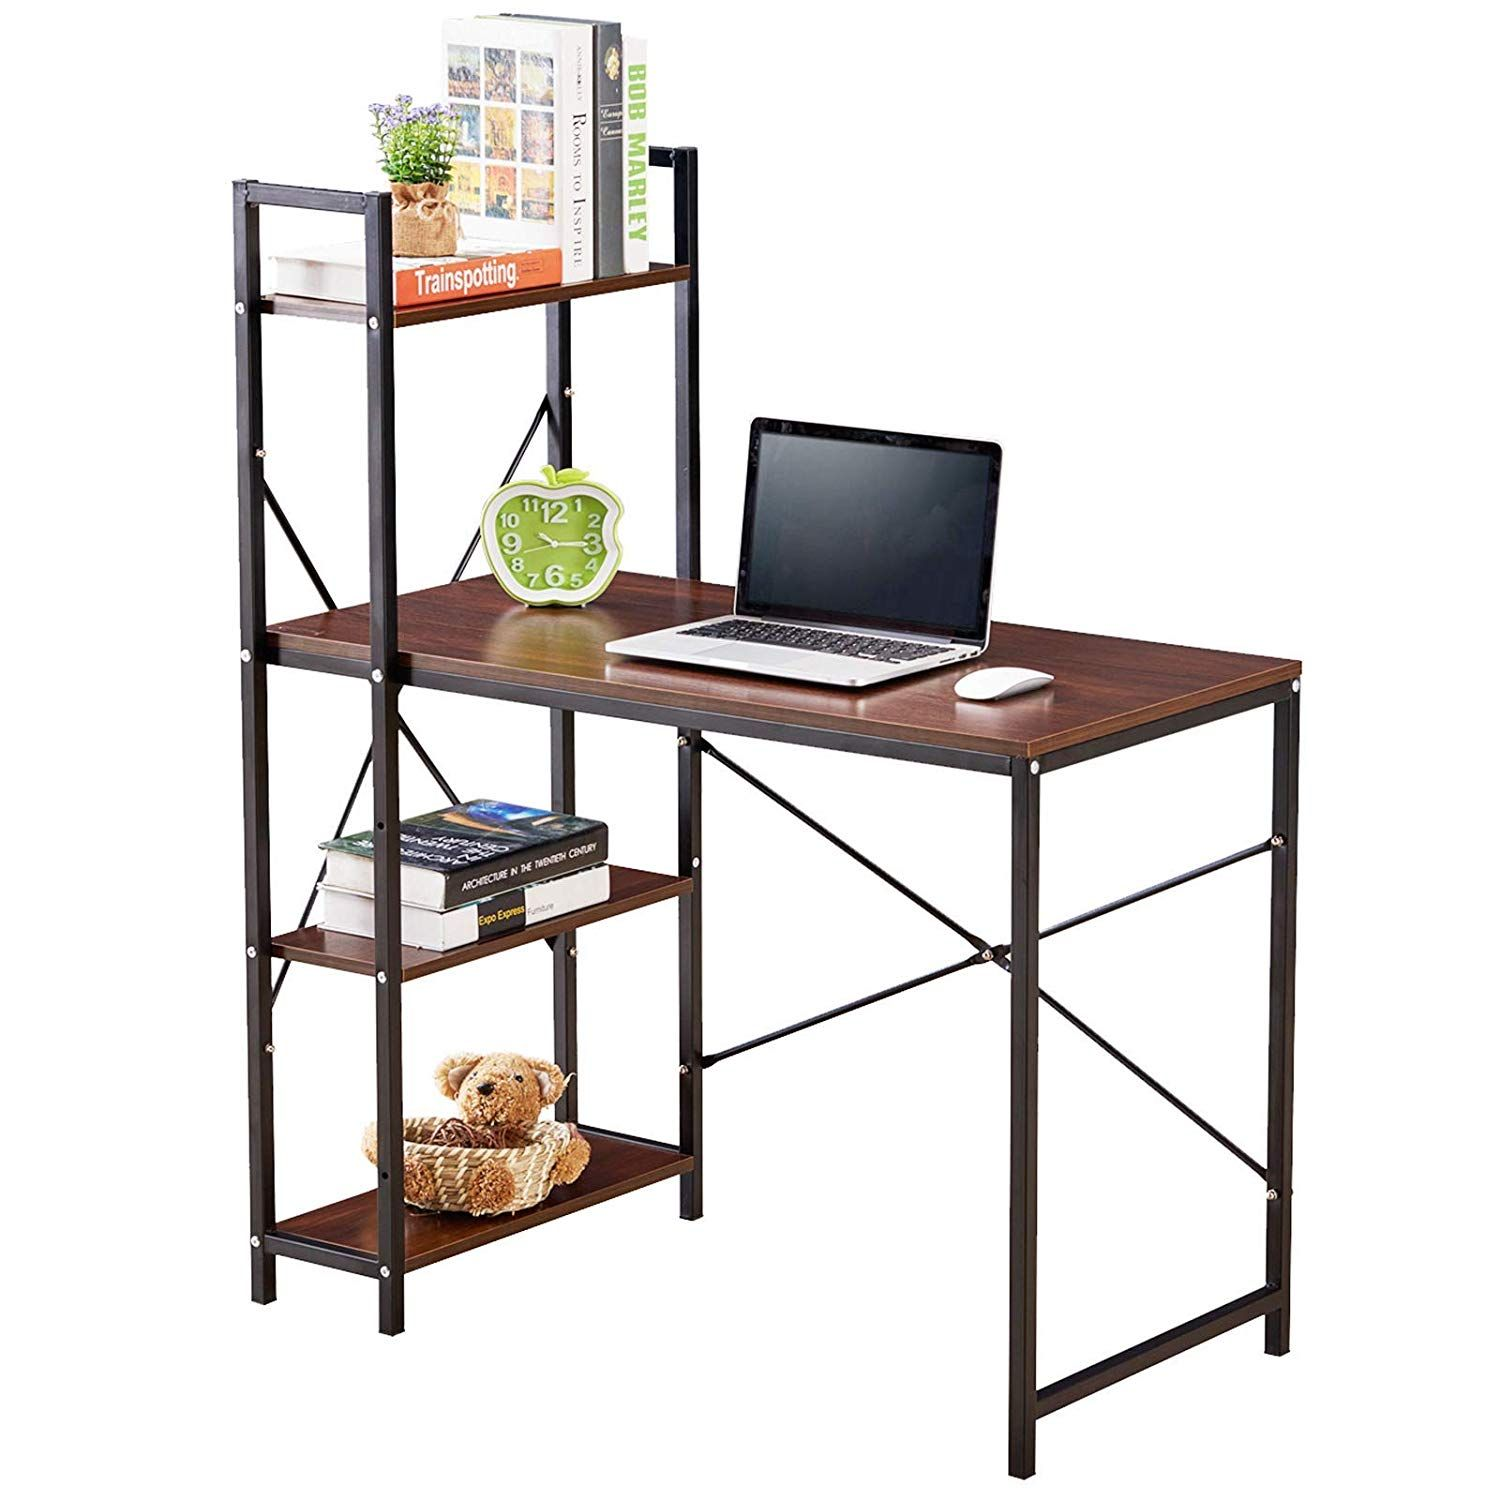 GreenForest Computer Desk with Shelves 4 Tier